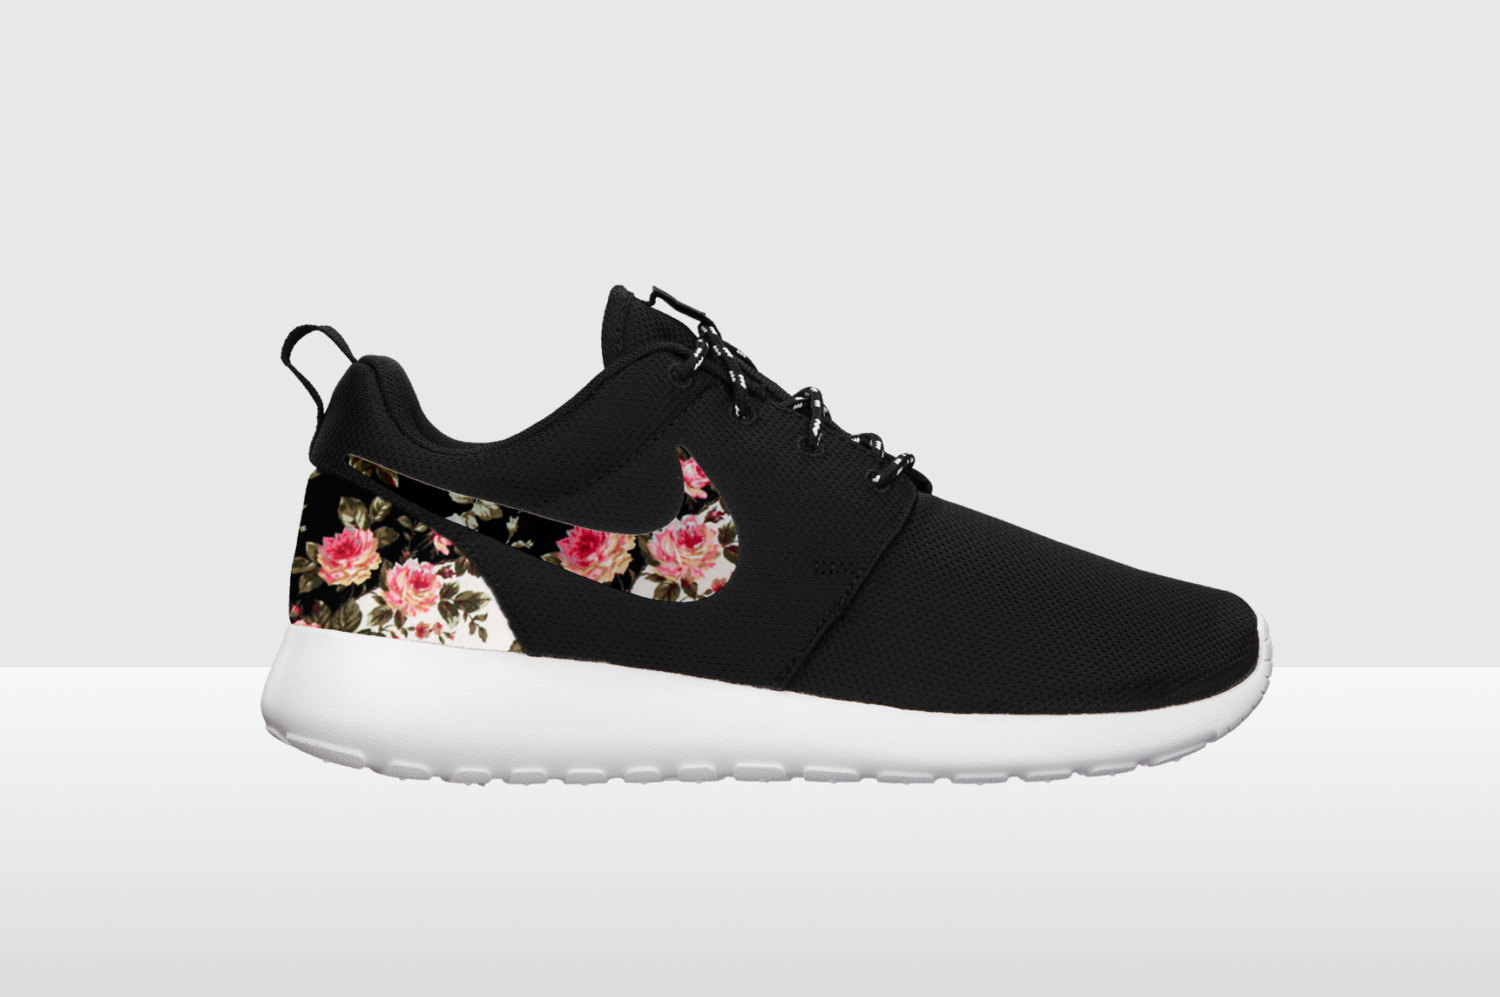 Black And White Floral Nike Running Shoes